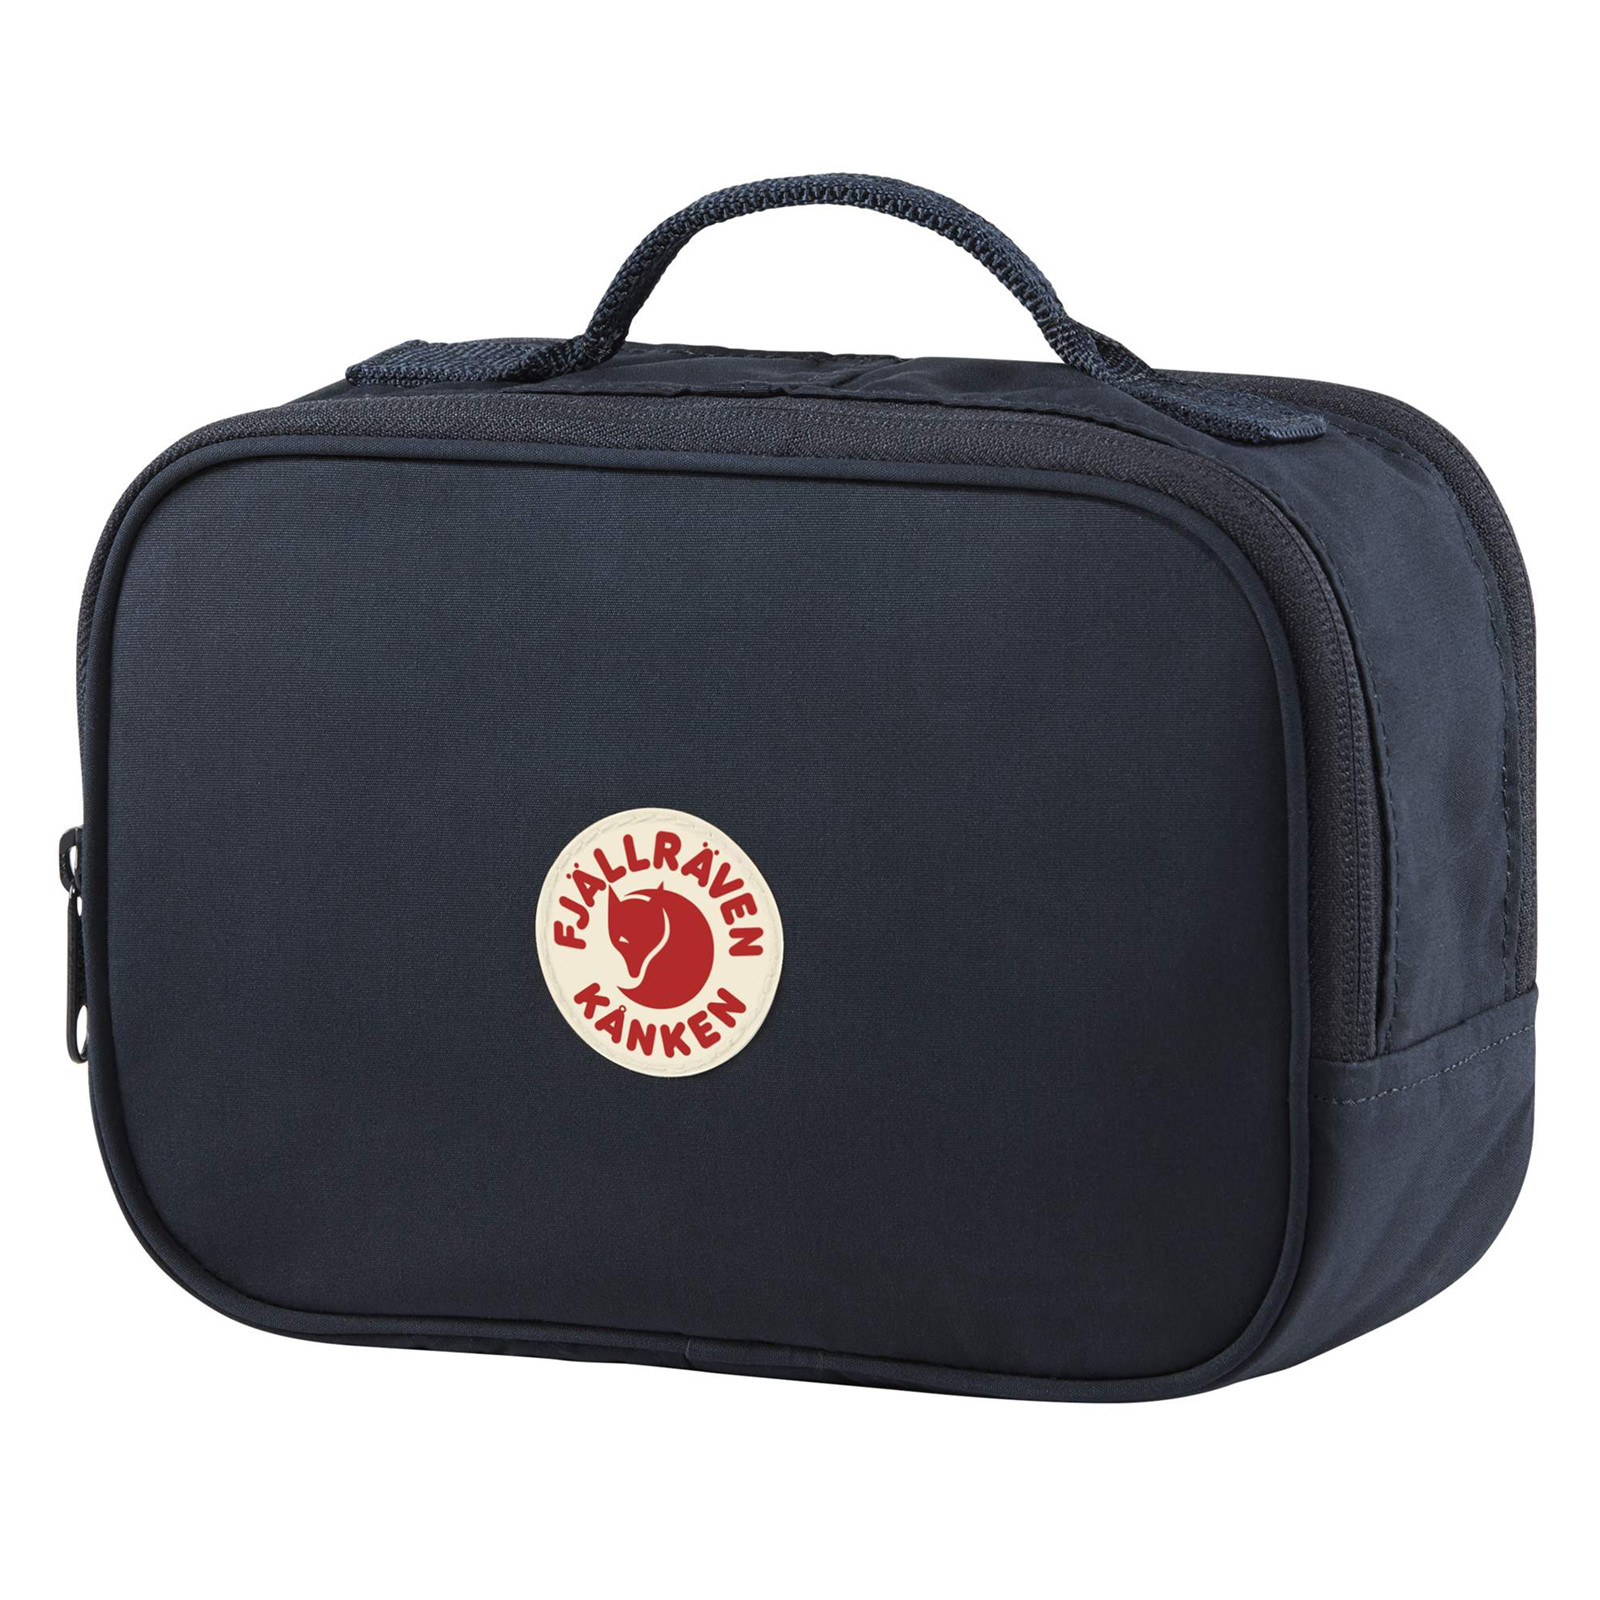 Fjällräven Kånken toiletry bag